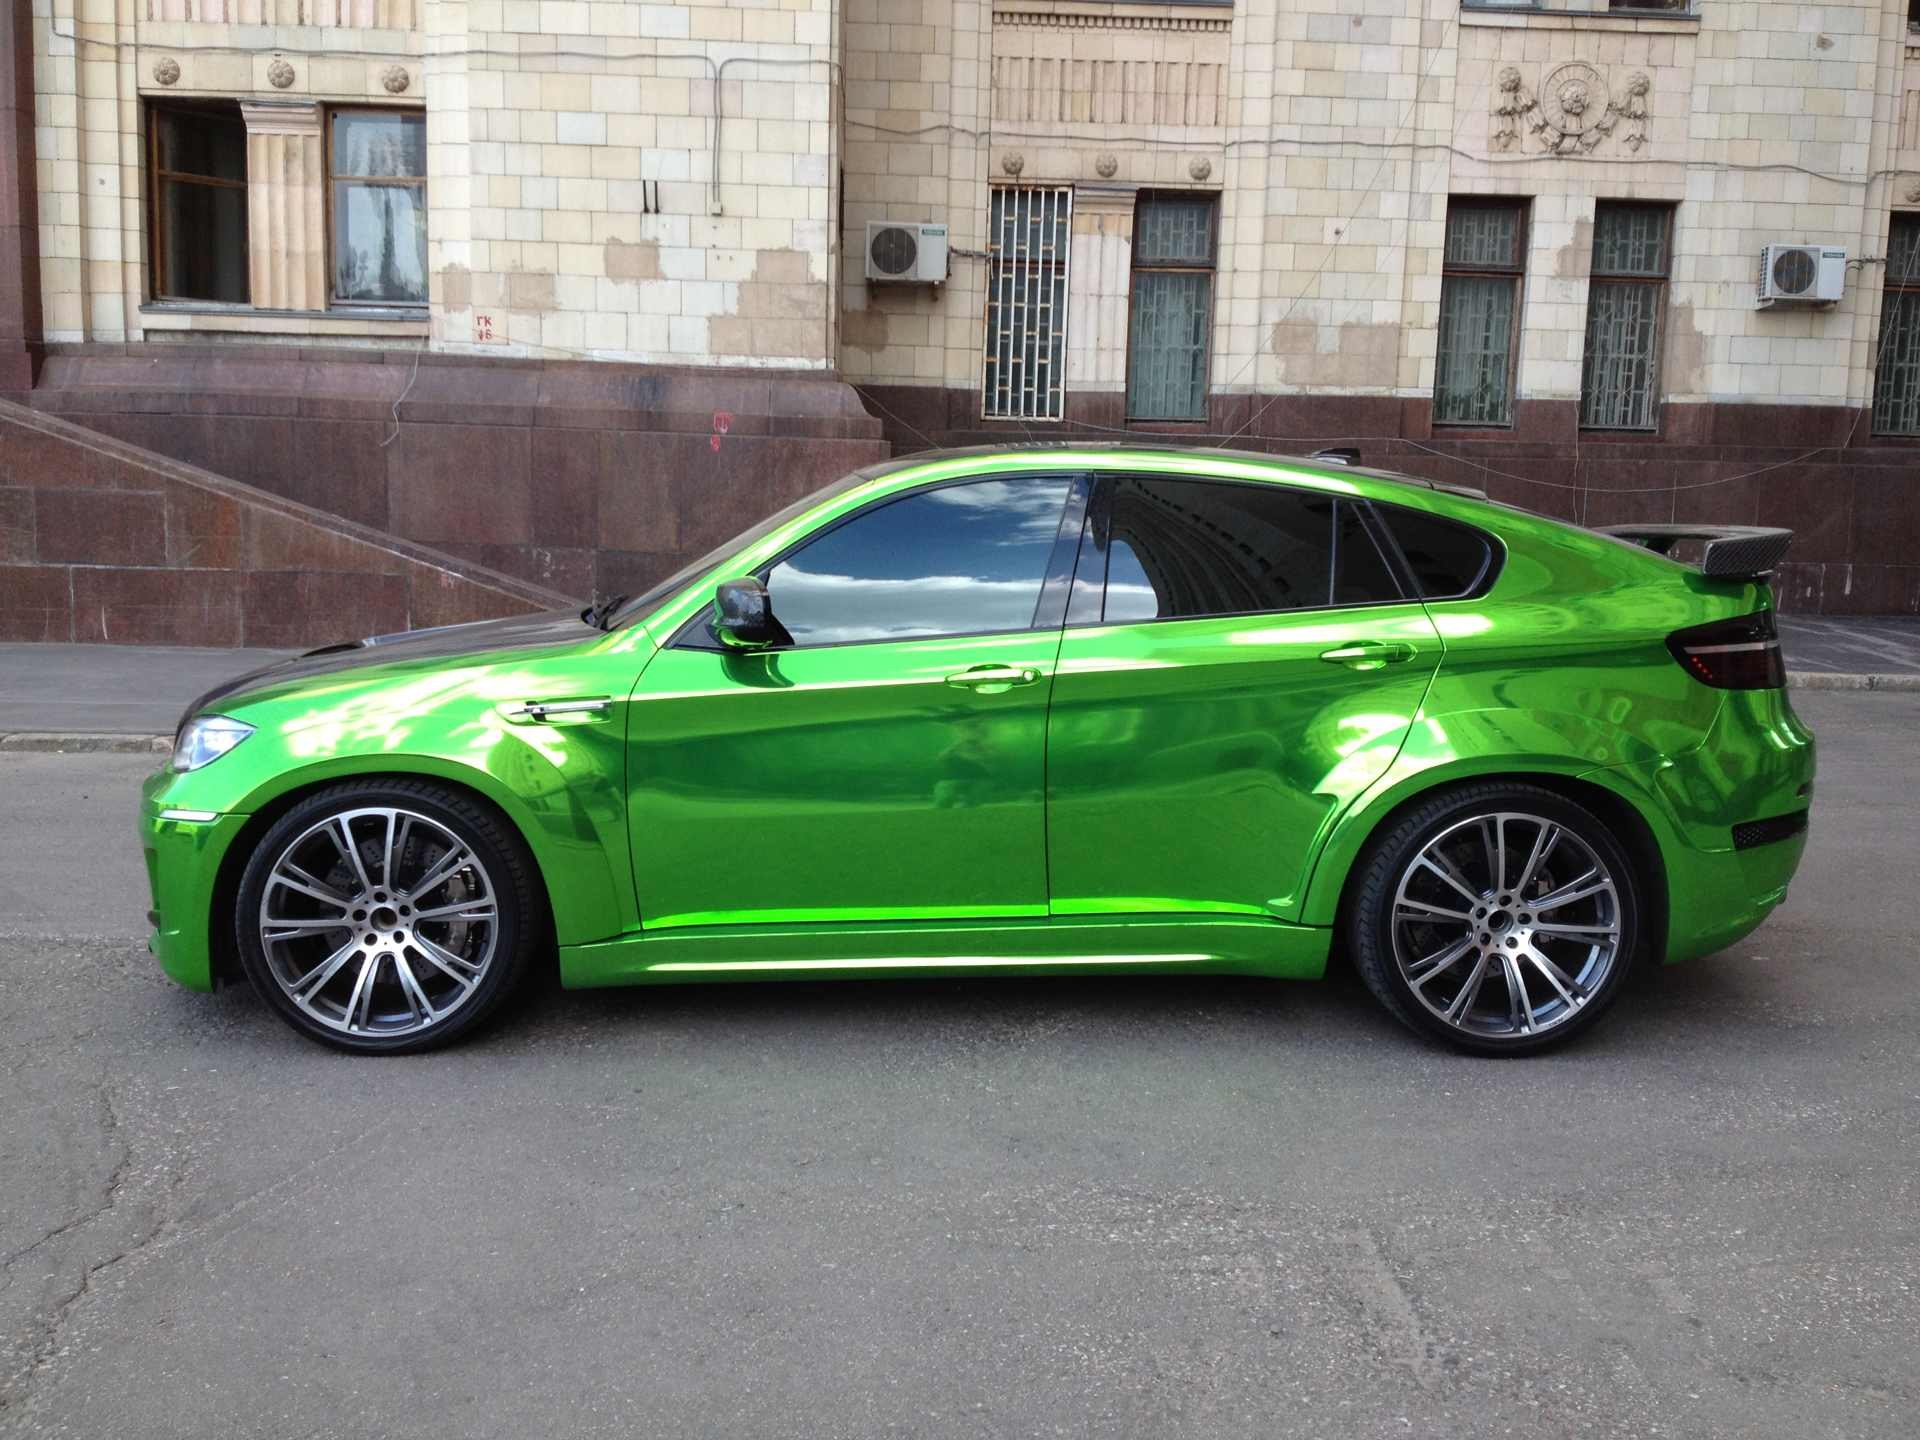 Green Car From Cars: Ready To Spot In Moscow: Chrome Green Lumma CLR X 650 M